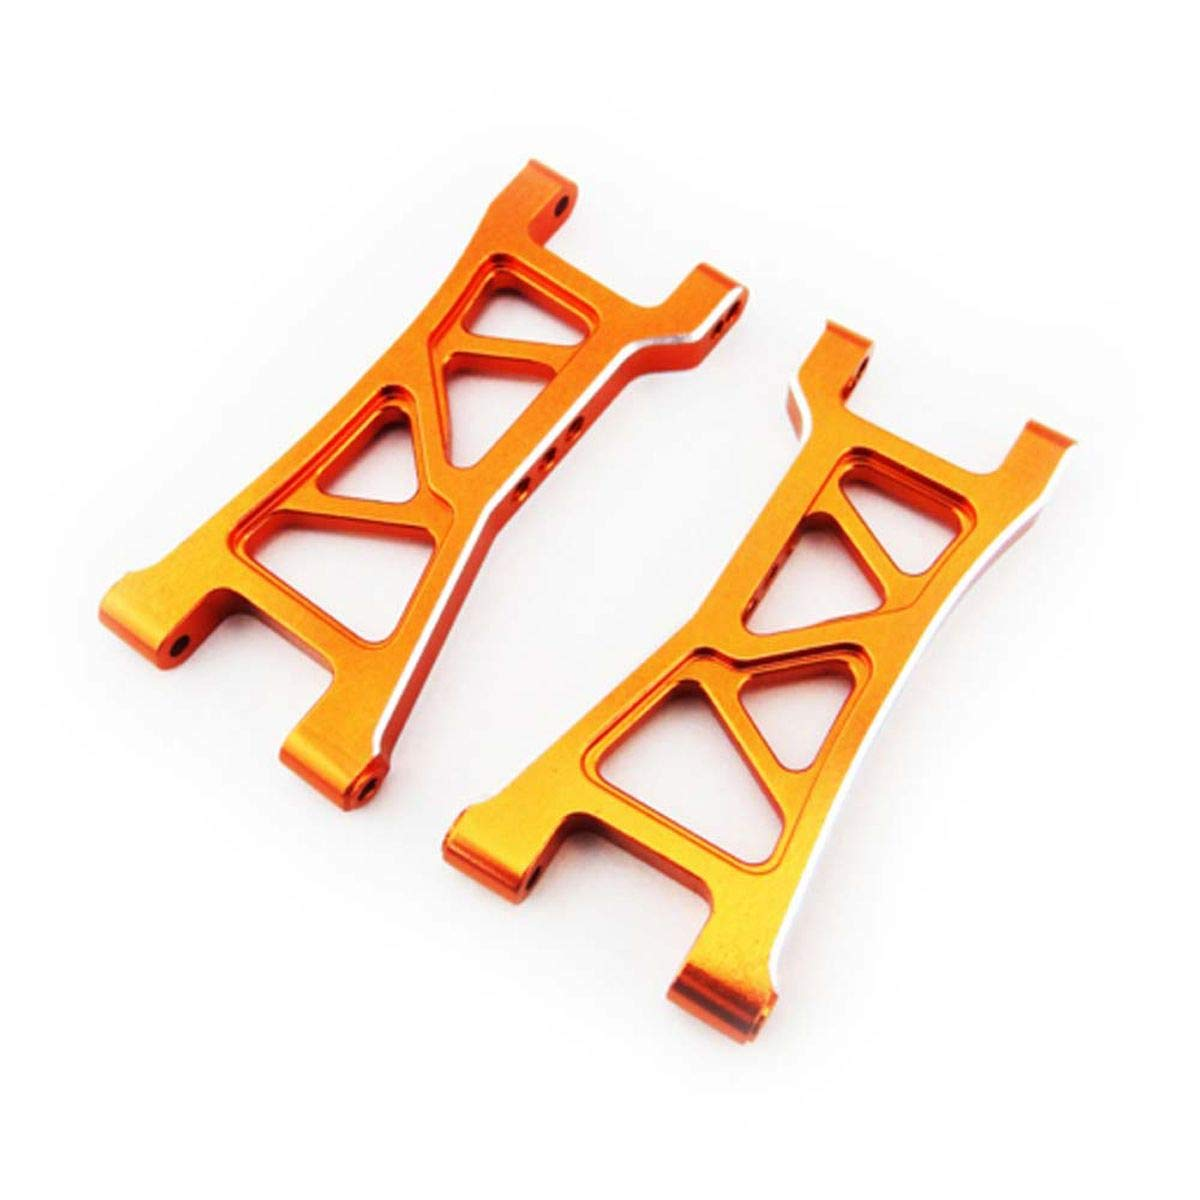 Hot Racing DMD5503 Aluminum Lower Suspension Arms - Dromida 1/18 by Hot Racing